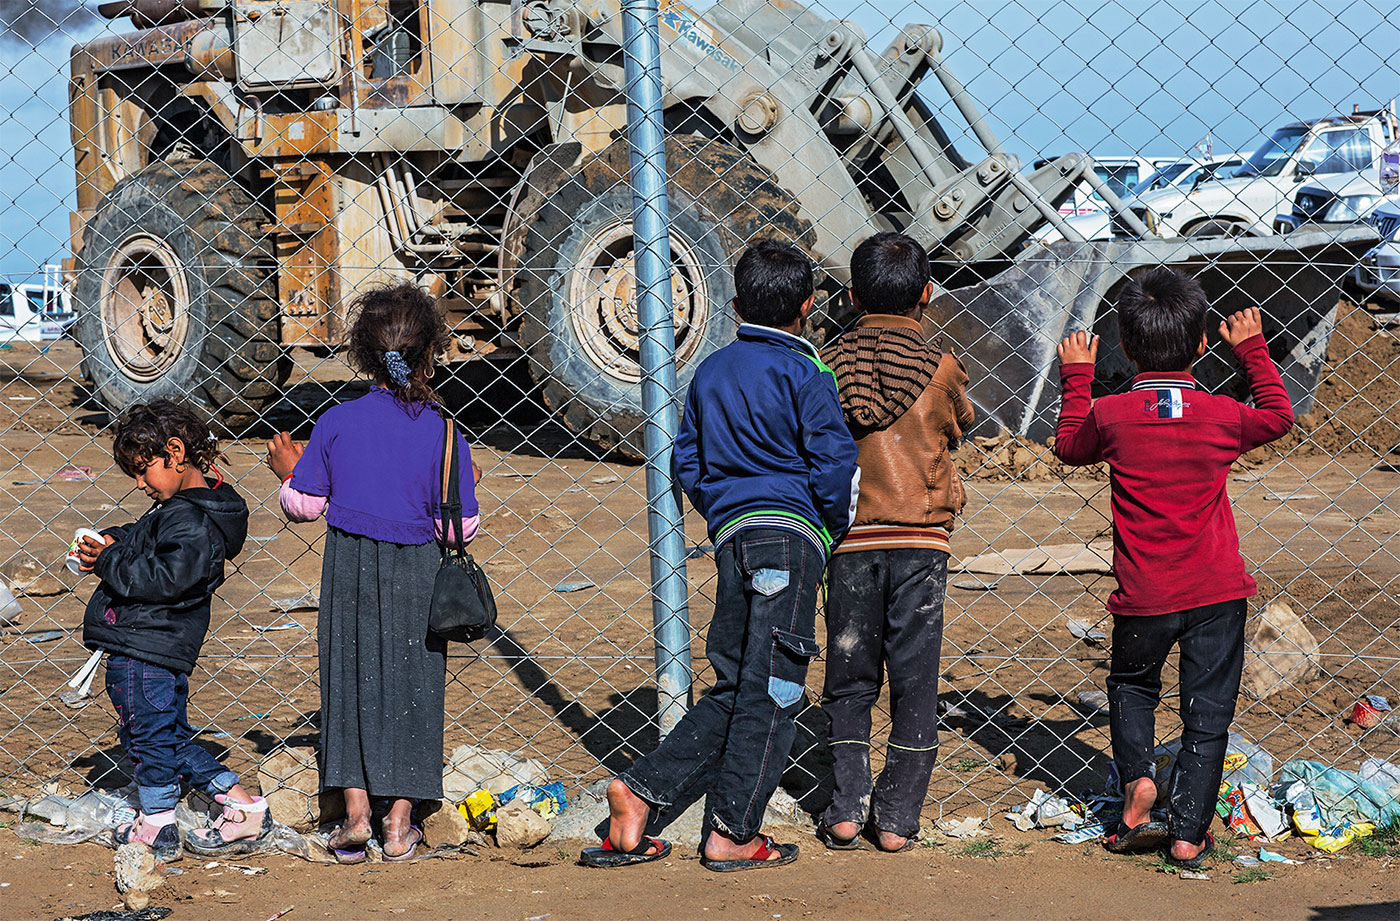 Back view of 5 children standing in front of a big iron net